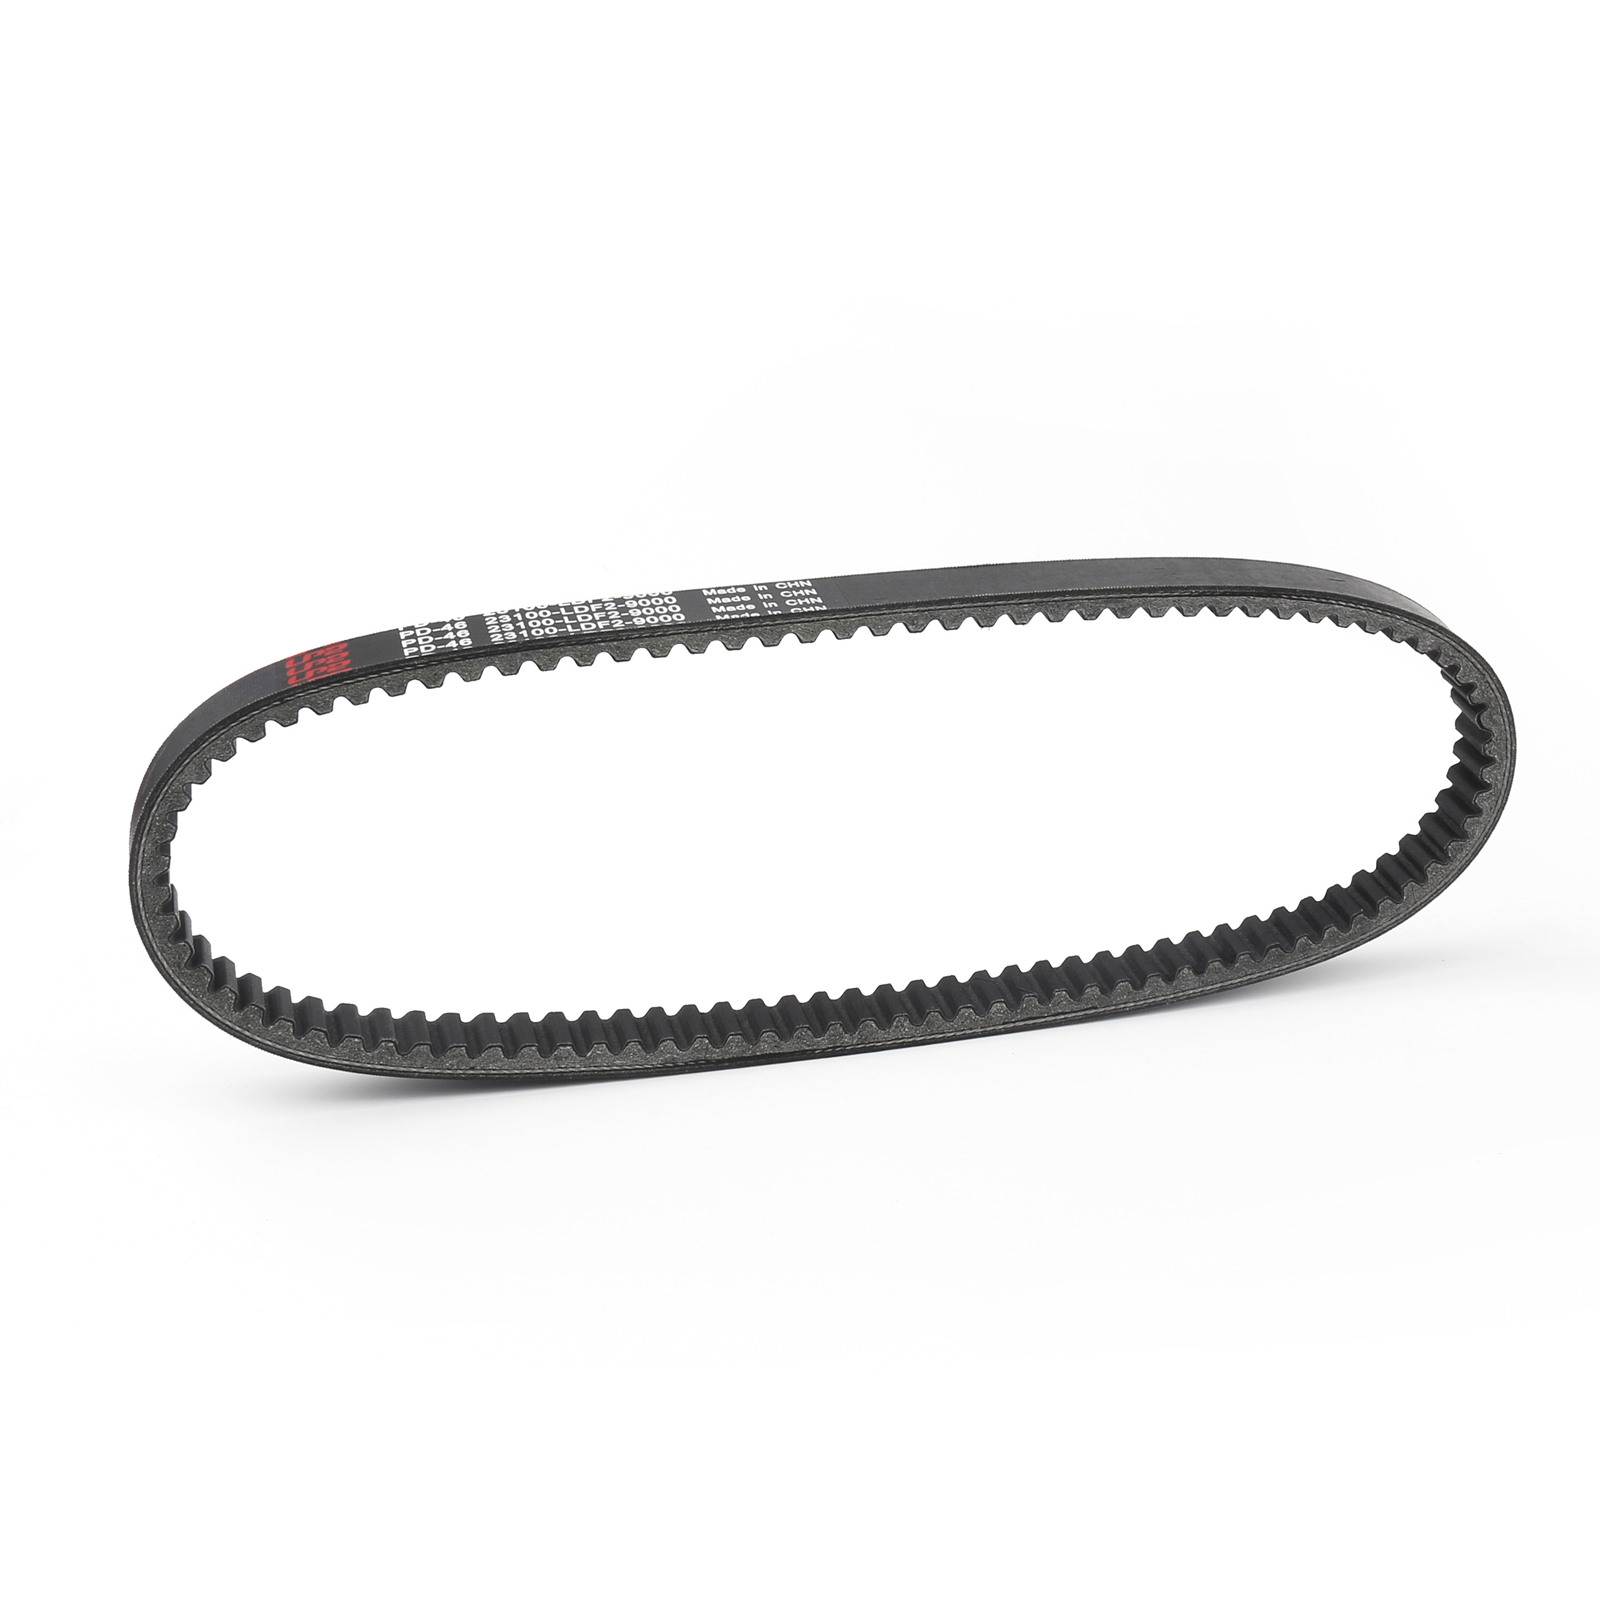 Drive Belt Ldf2 900 For Kymco 200 250 300 People S